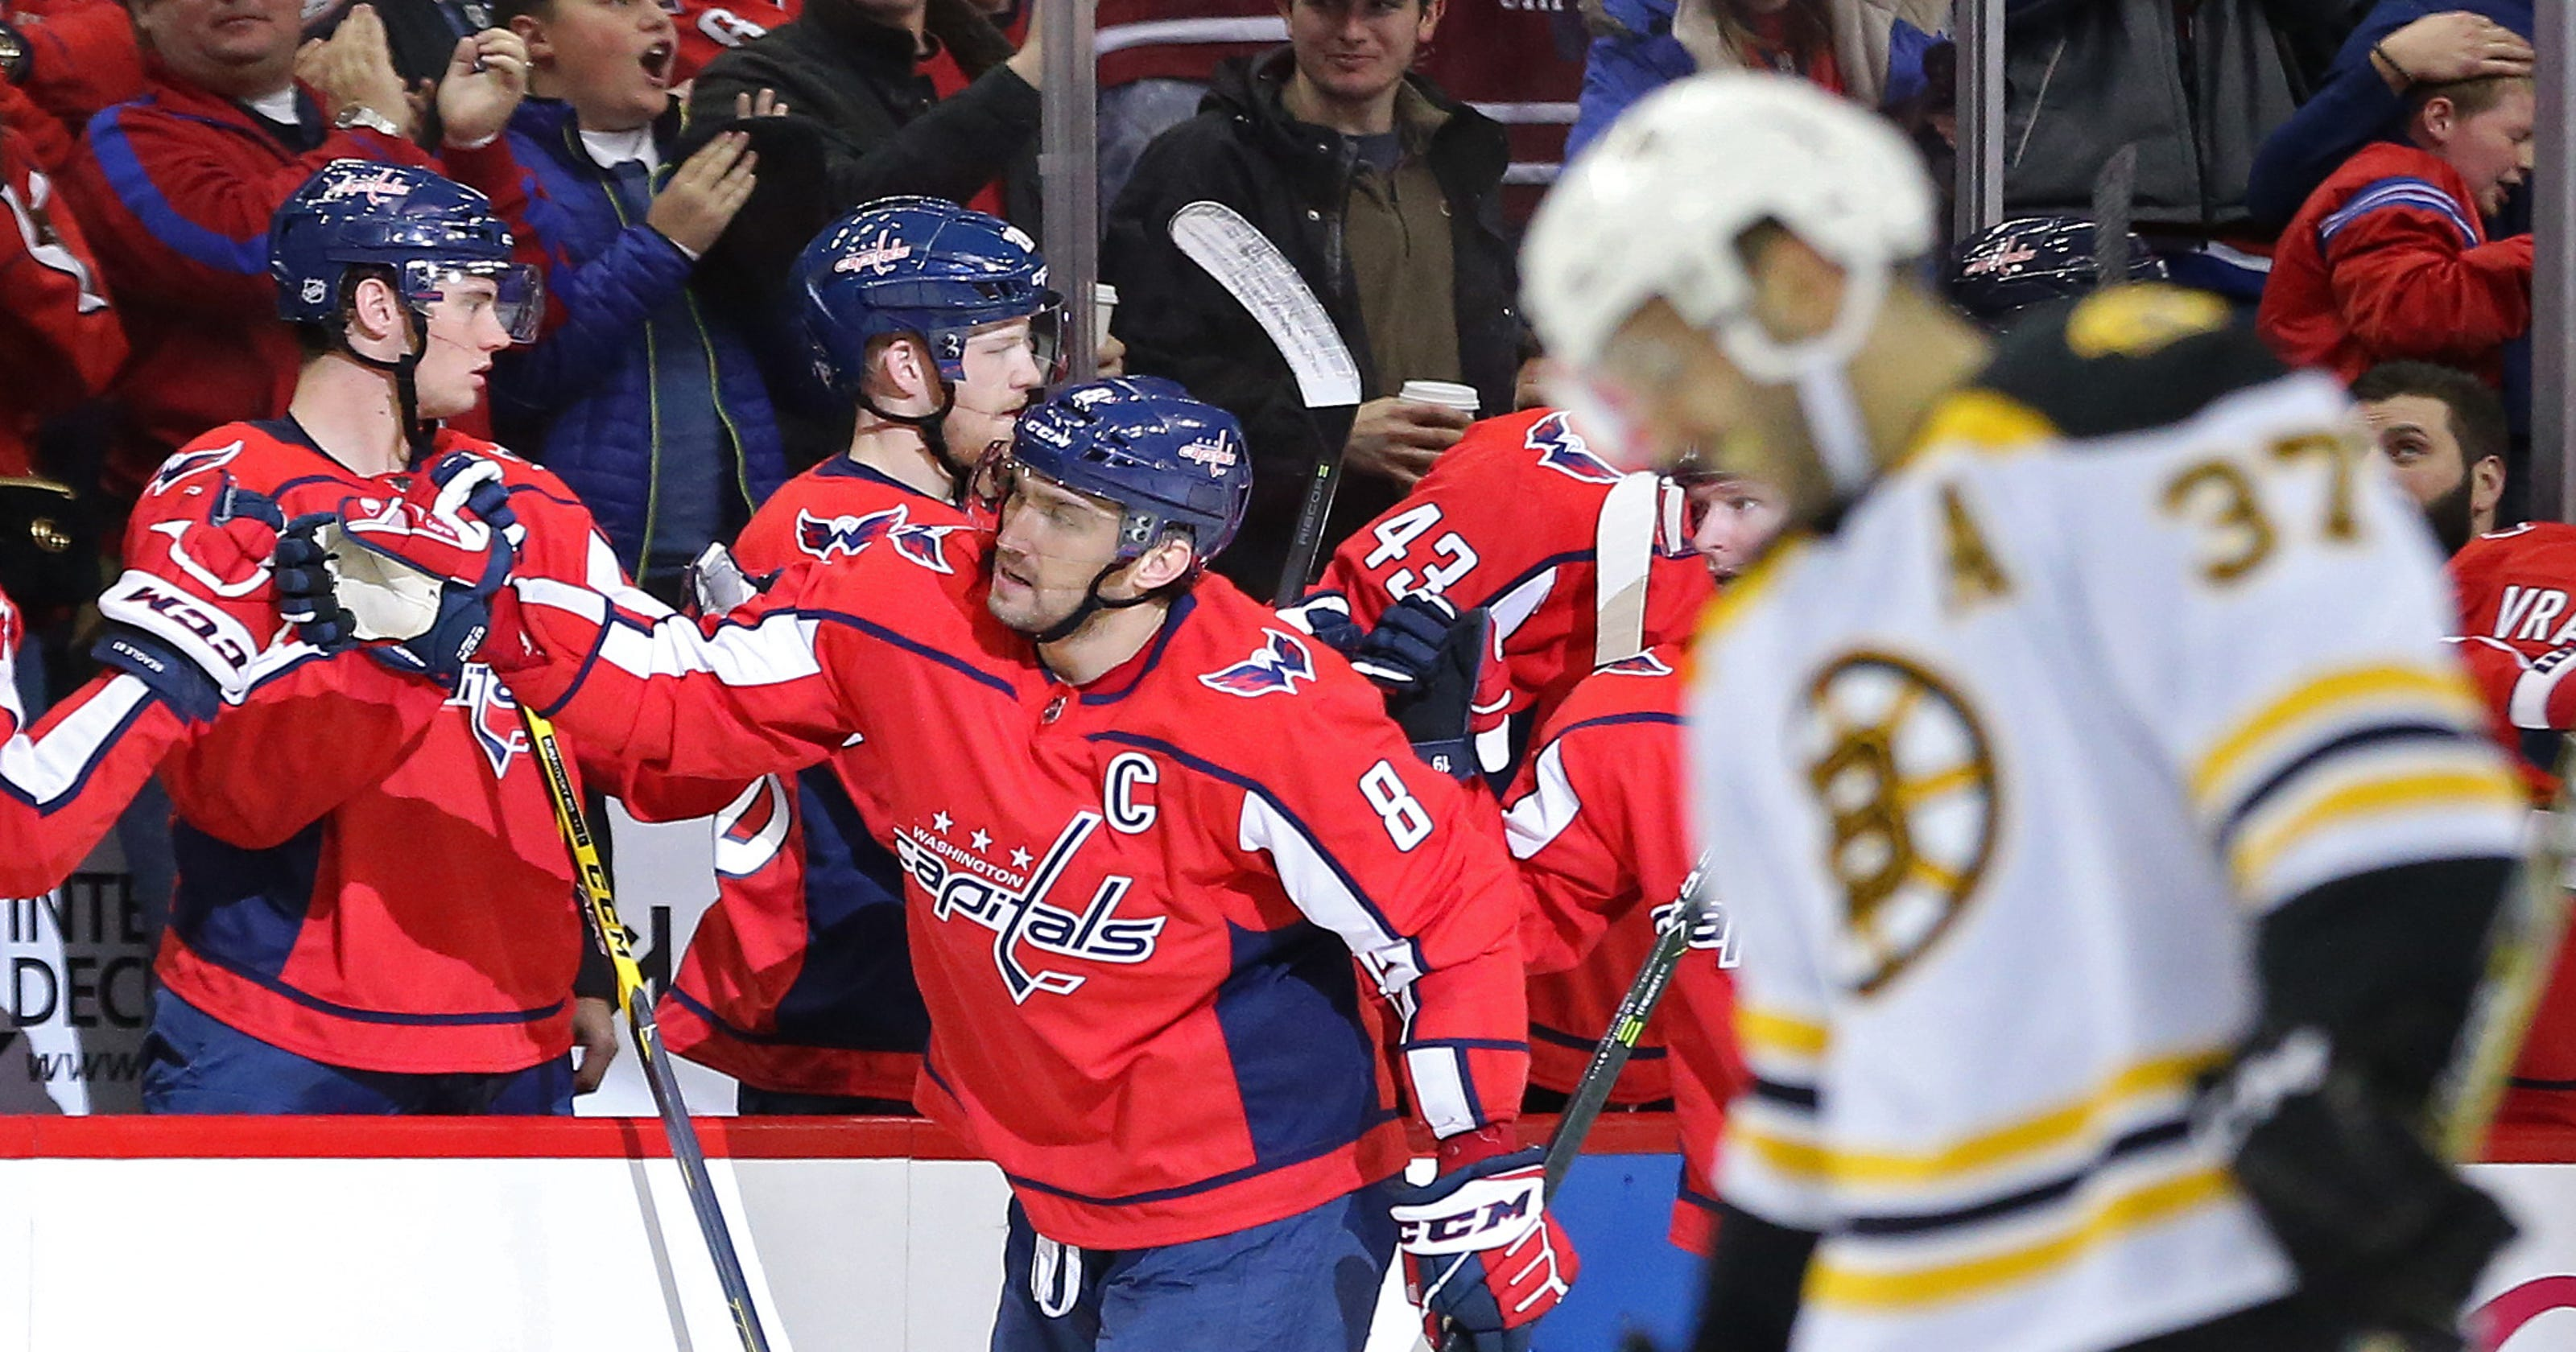 Capitals rally to 12th straight win over Bruins 951d74aefc09